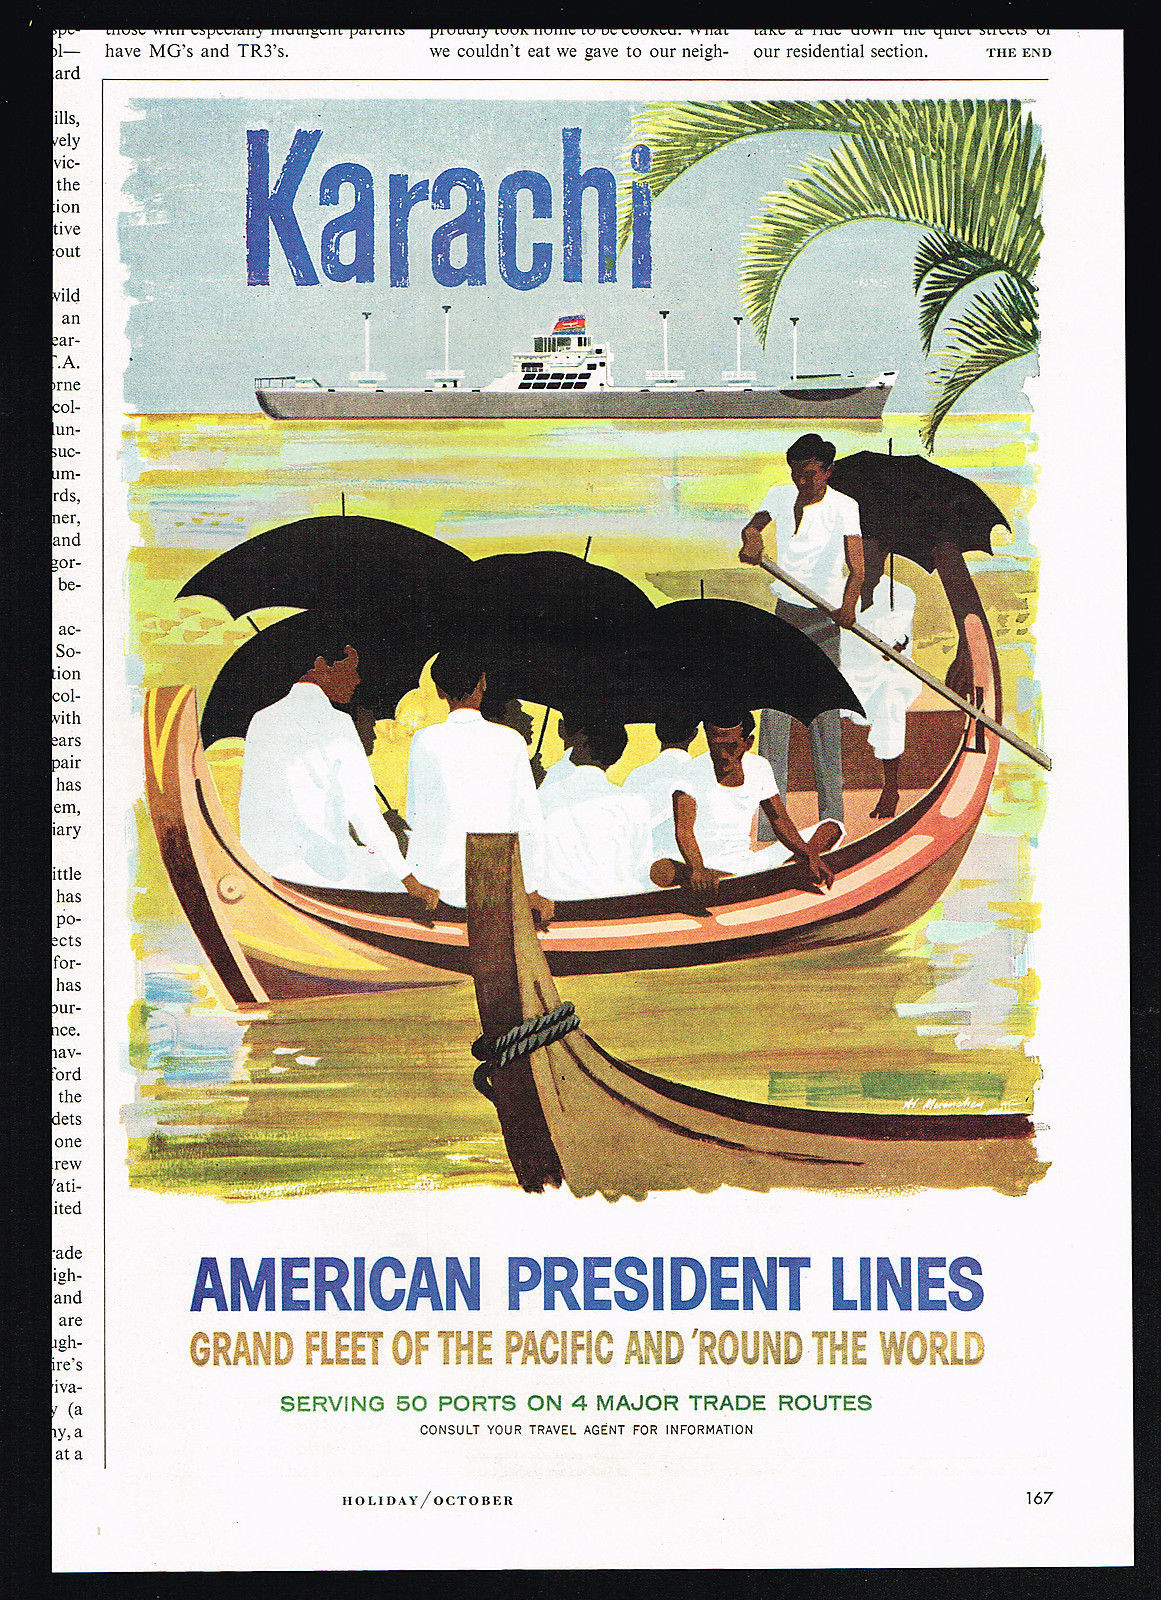 A 1957 ad in an American magazine for a US luxury line offering Karachi as a tourist destination.